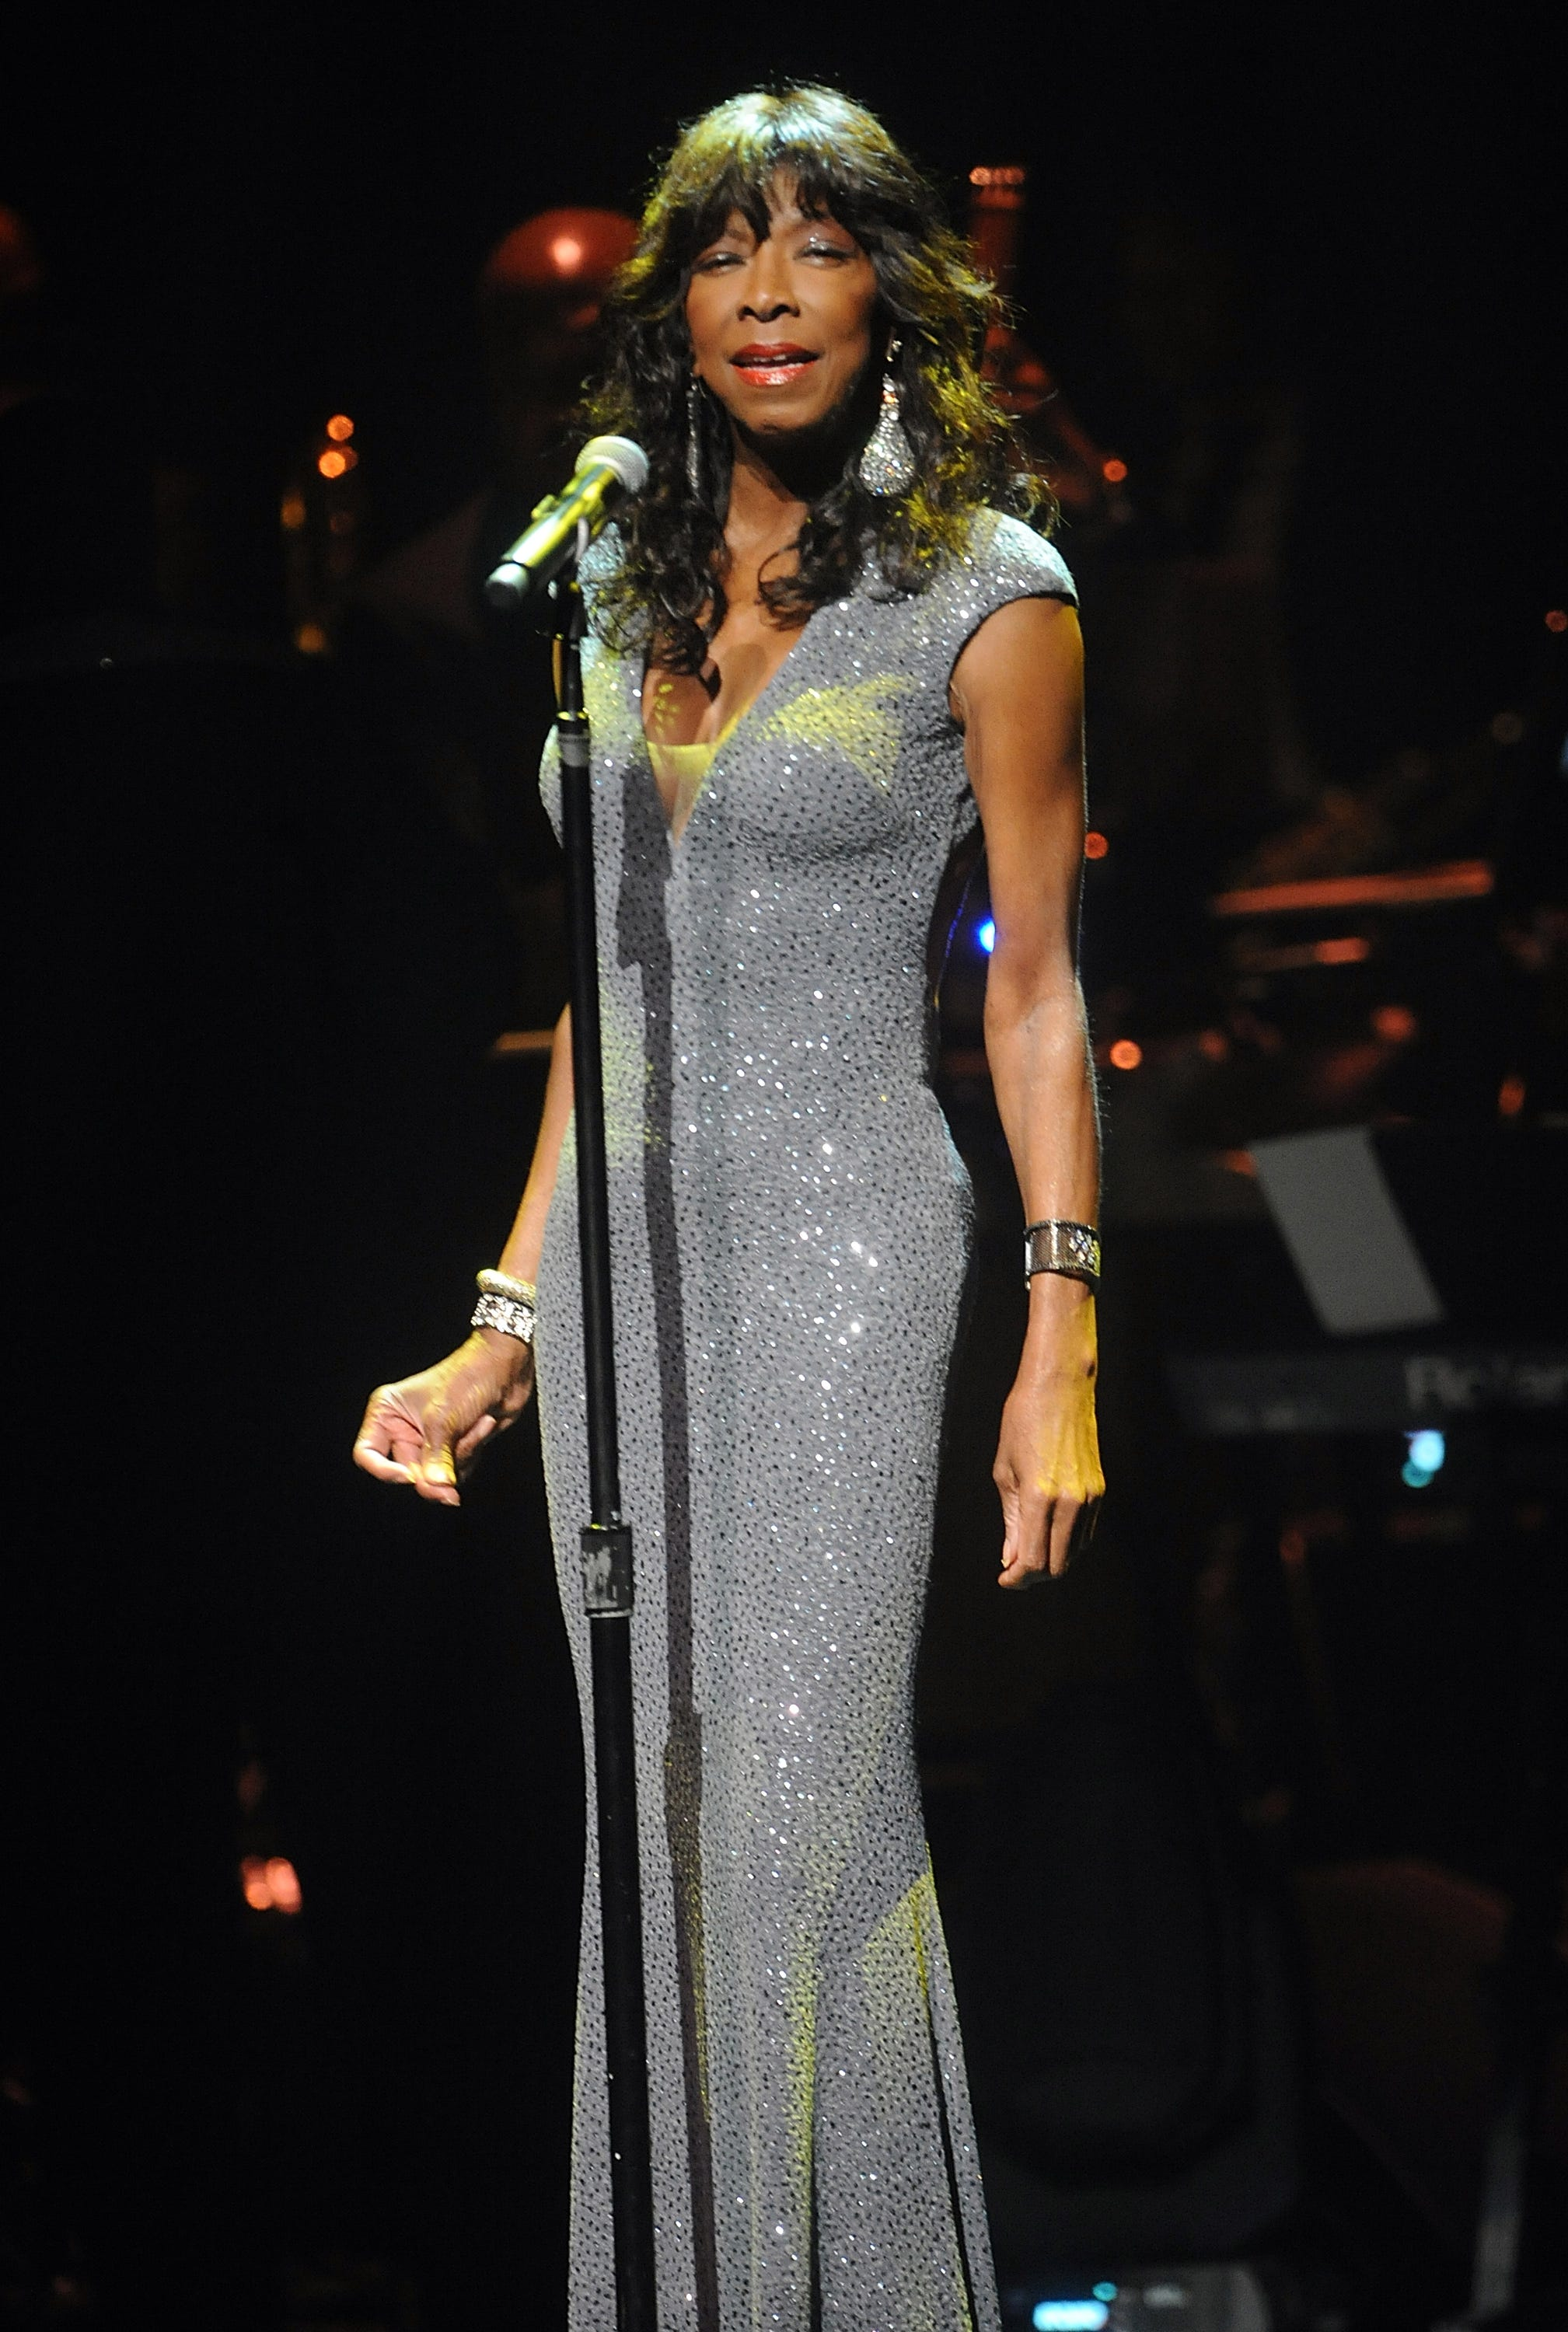 natalie cole fever